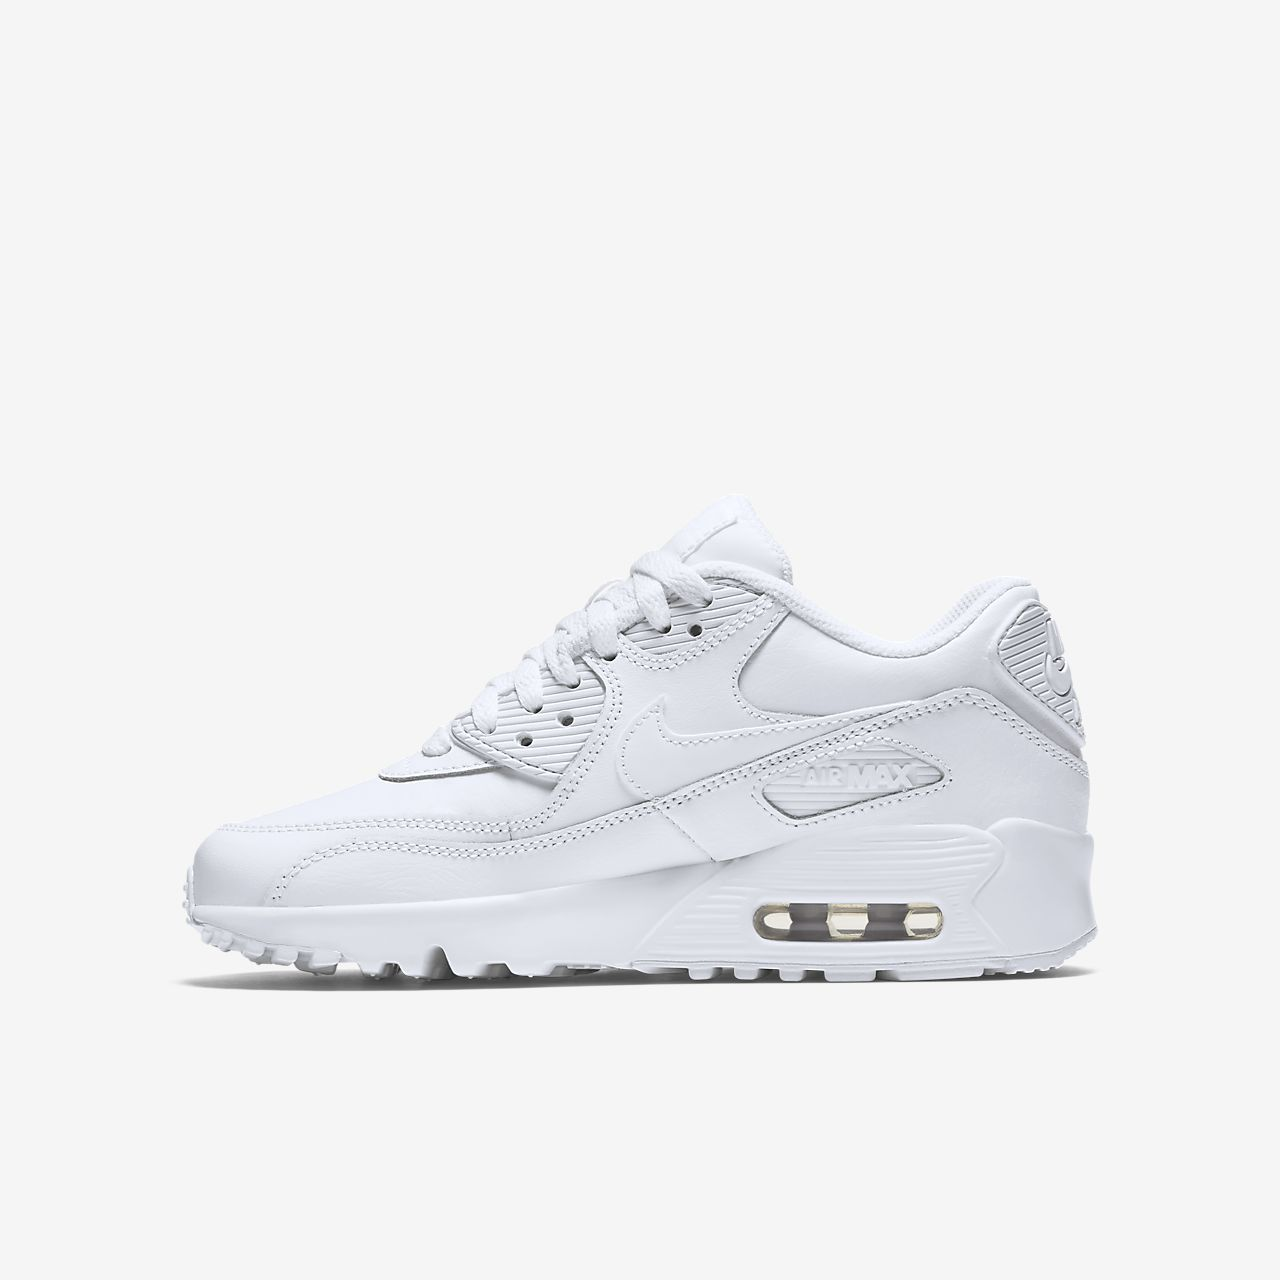 Nike Air Max 90 Leather White Menos De 50 Dólares 2hqxN4XFCE